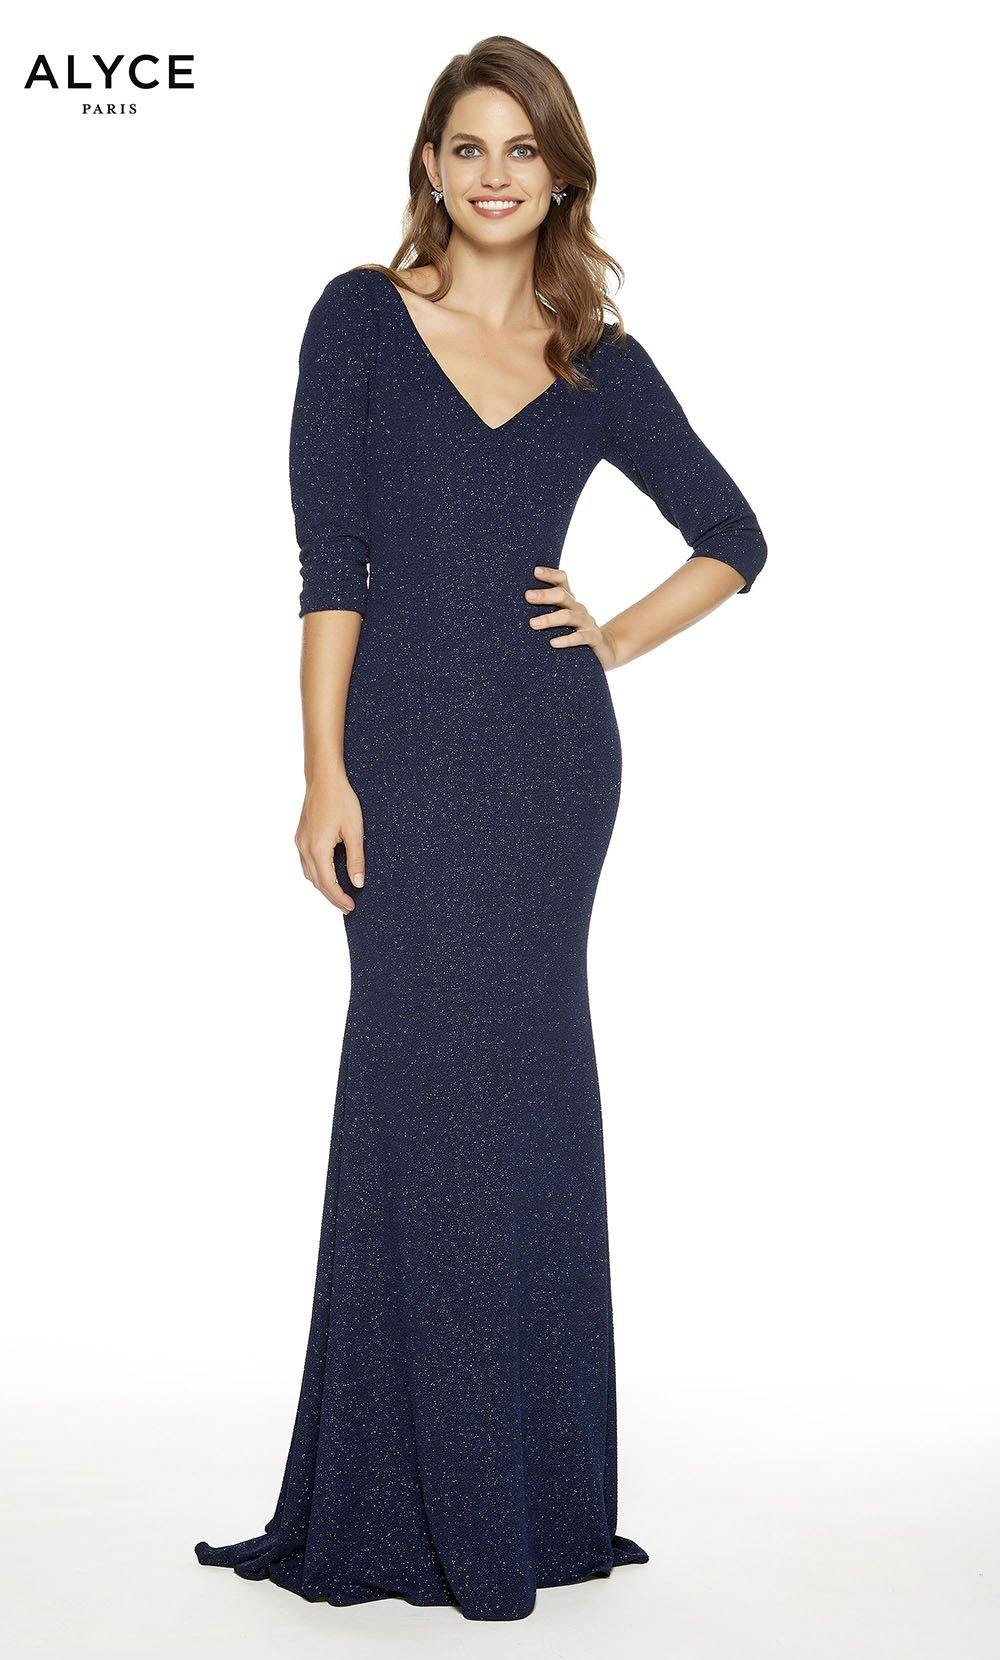 Midnight formal dress with a V-neckline and 3/4 sleeves